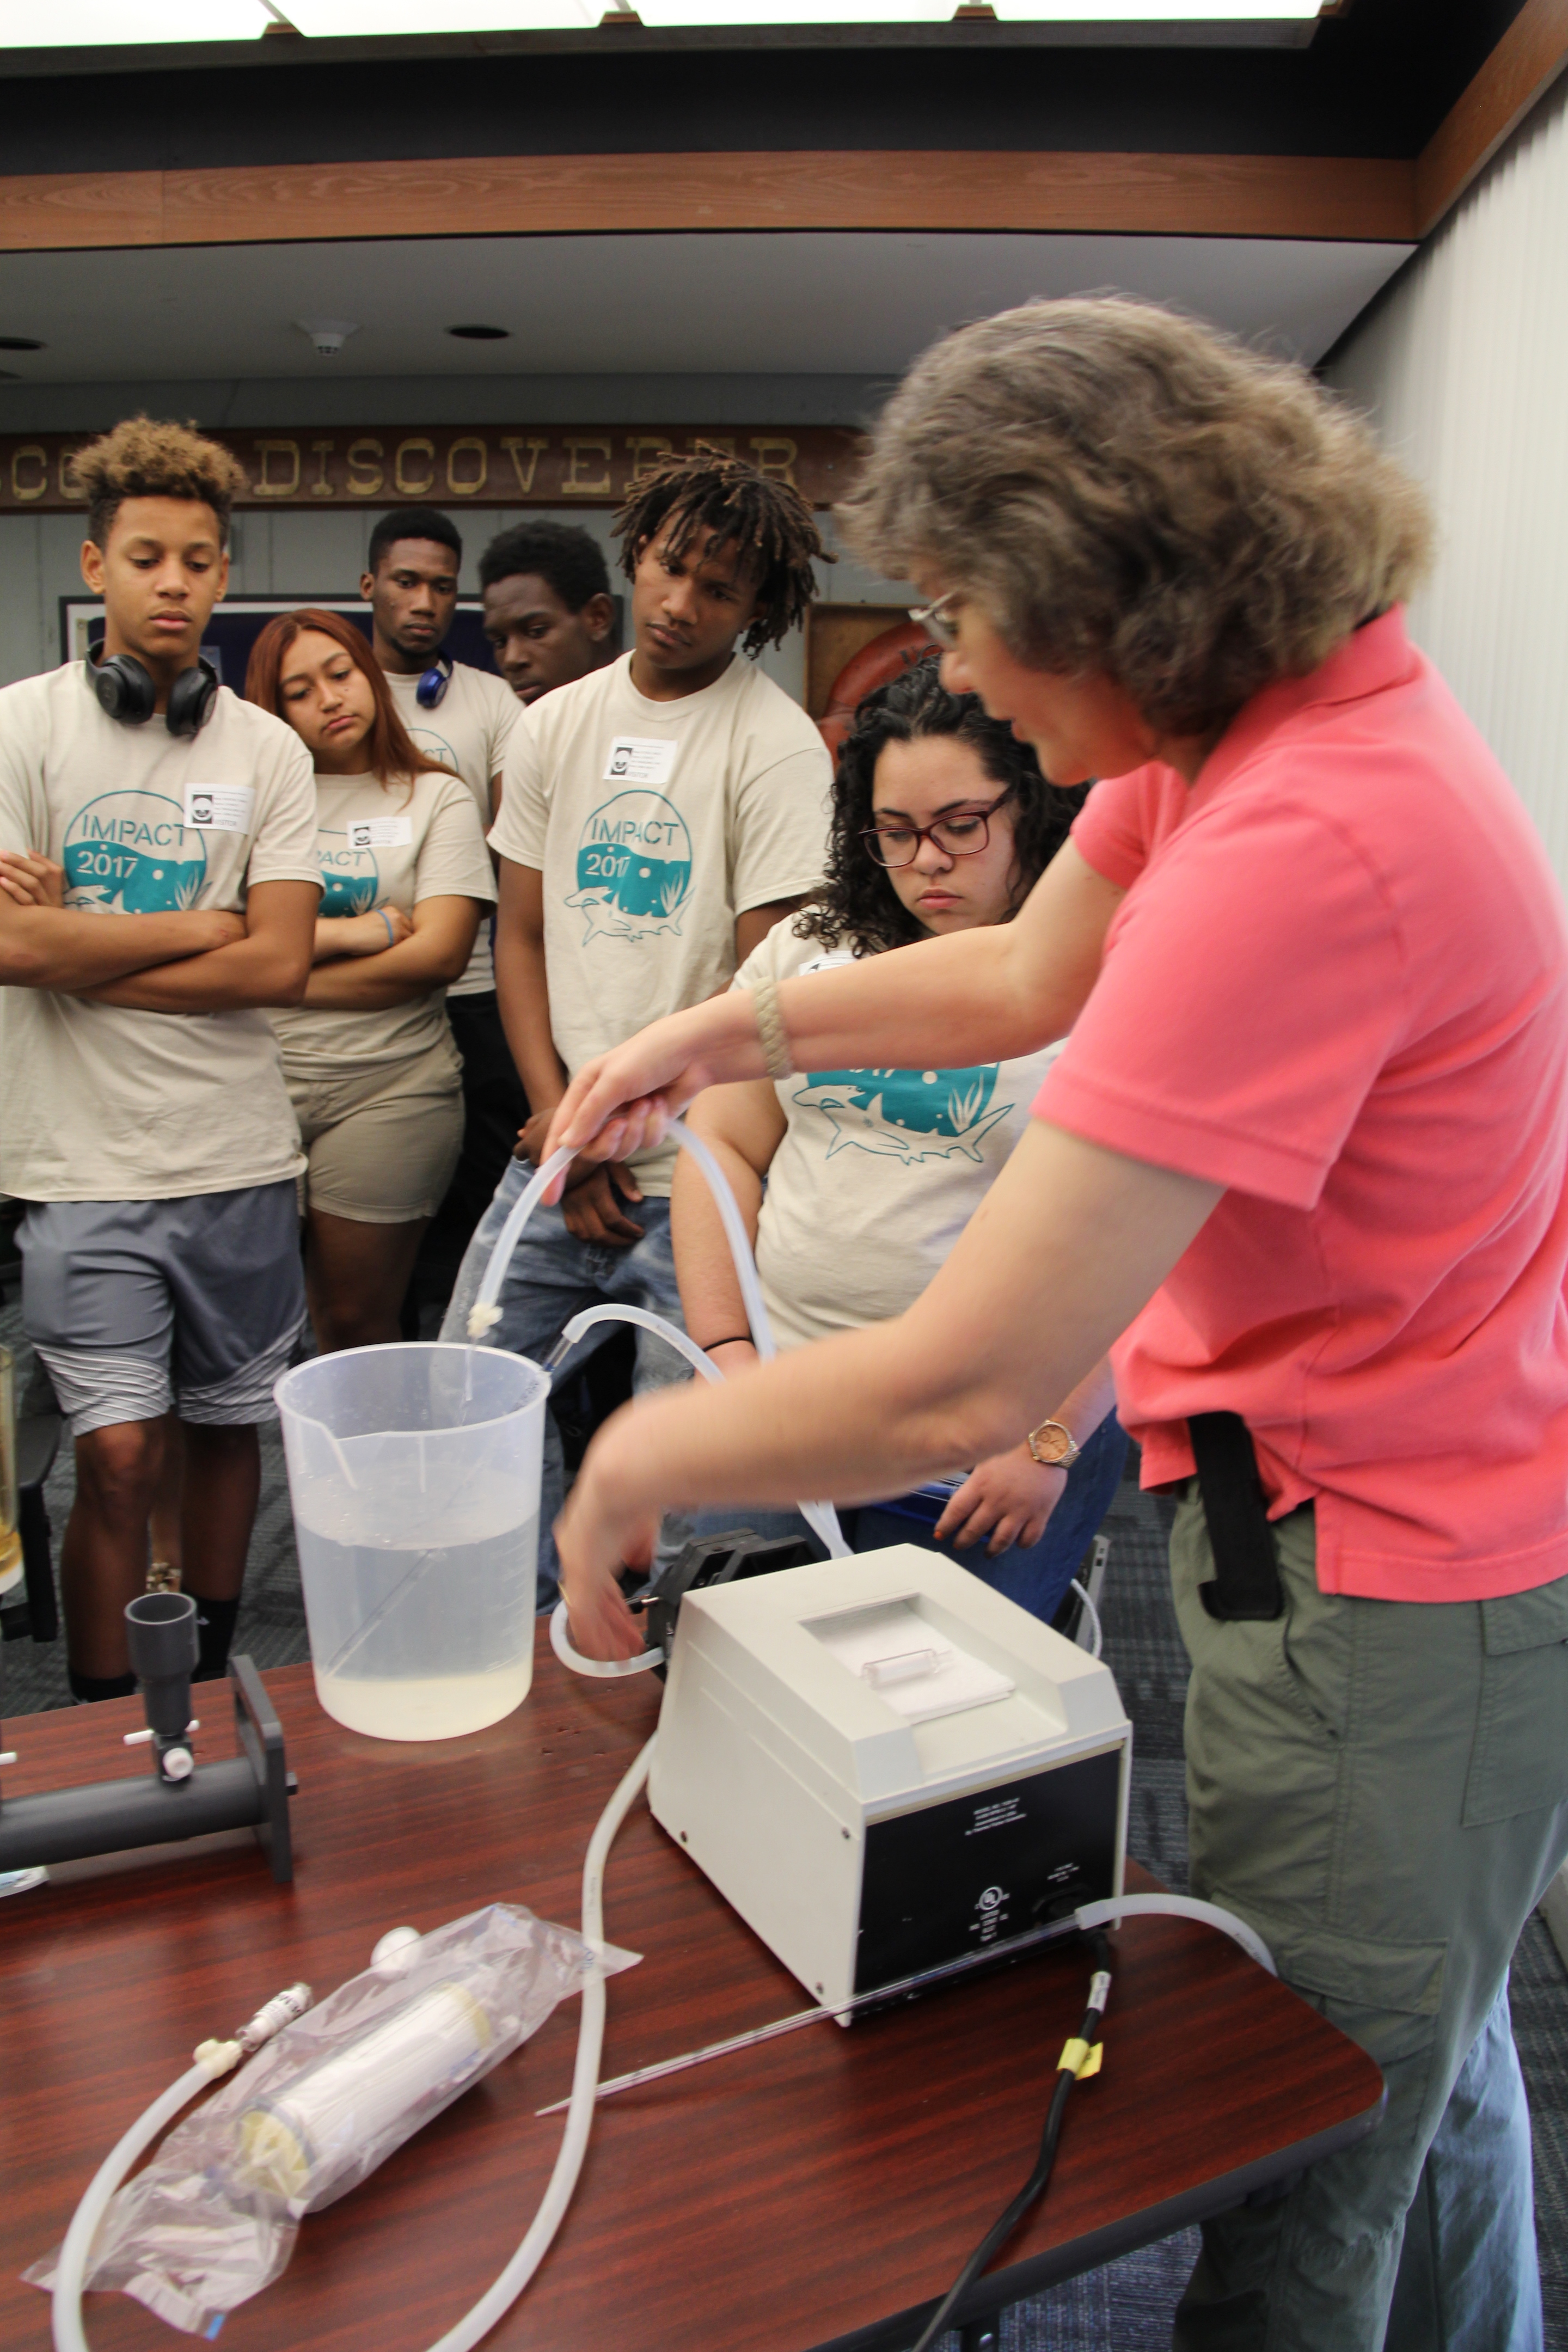 Maribeth Gidley teaches students about marine microbial ecology. Image credit: NOAA